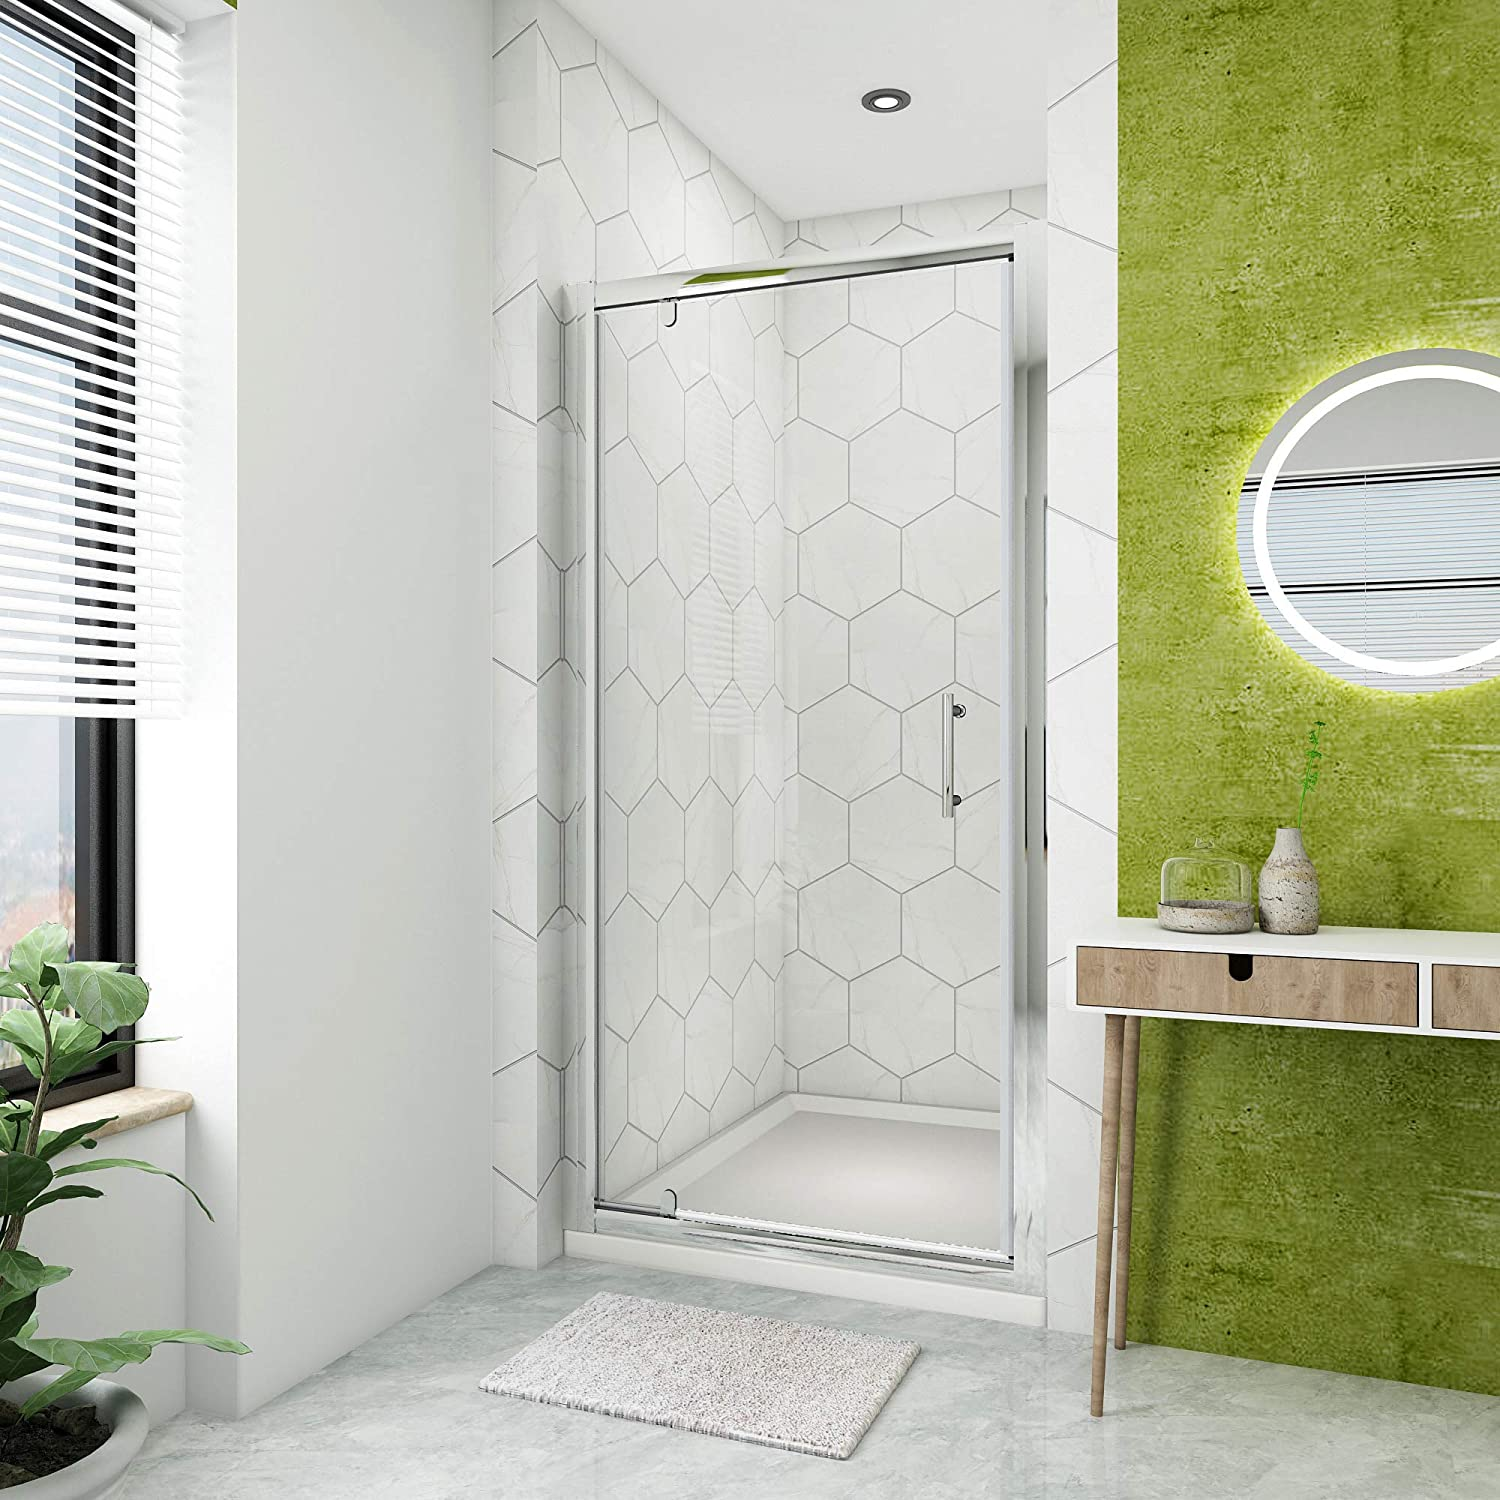 760mm Pivot Hinge Shower Door 6mm Safety Glass Reversible Shower Enclosure Cubicle